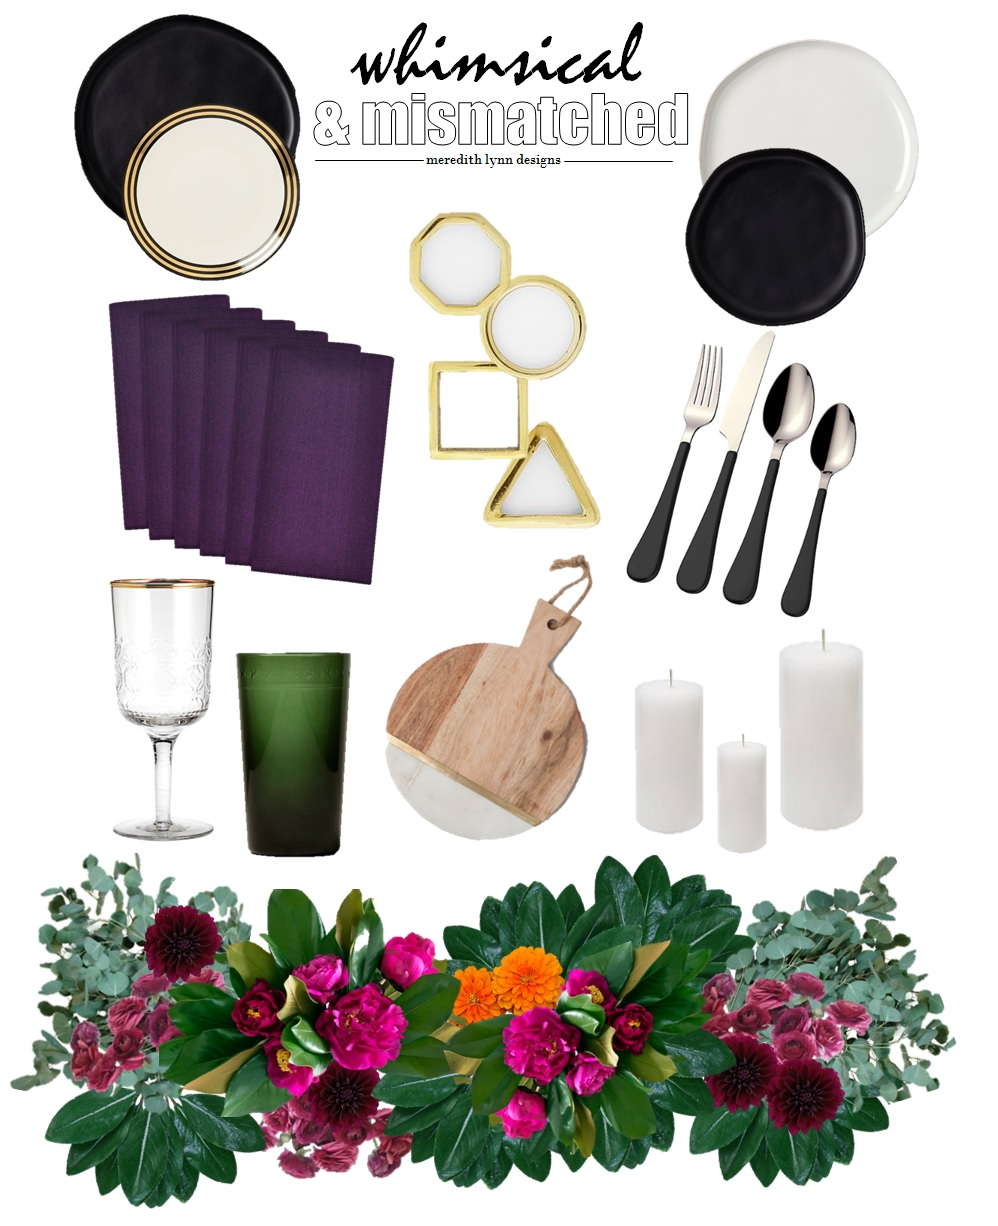 Dinner Plates  |  Black Salad Plate  |  White & Gold Salad Plate  |  Napkins  |  Green Drinking Glass  |  Gold Napkin Rings  |  Gold Rim Drinking Glass  |  Flatware  |  Cheese Board